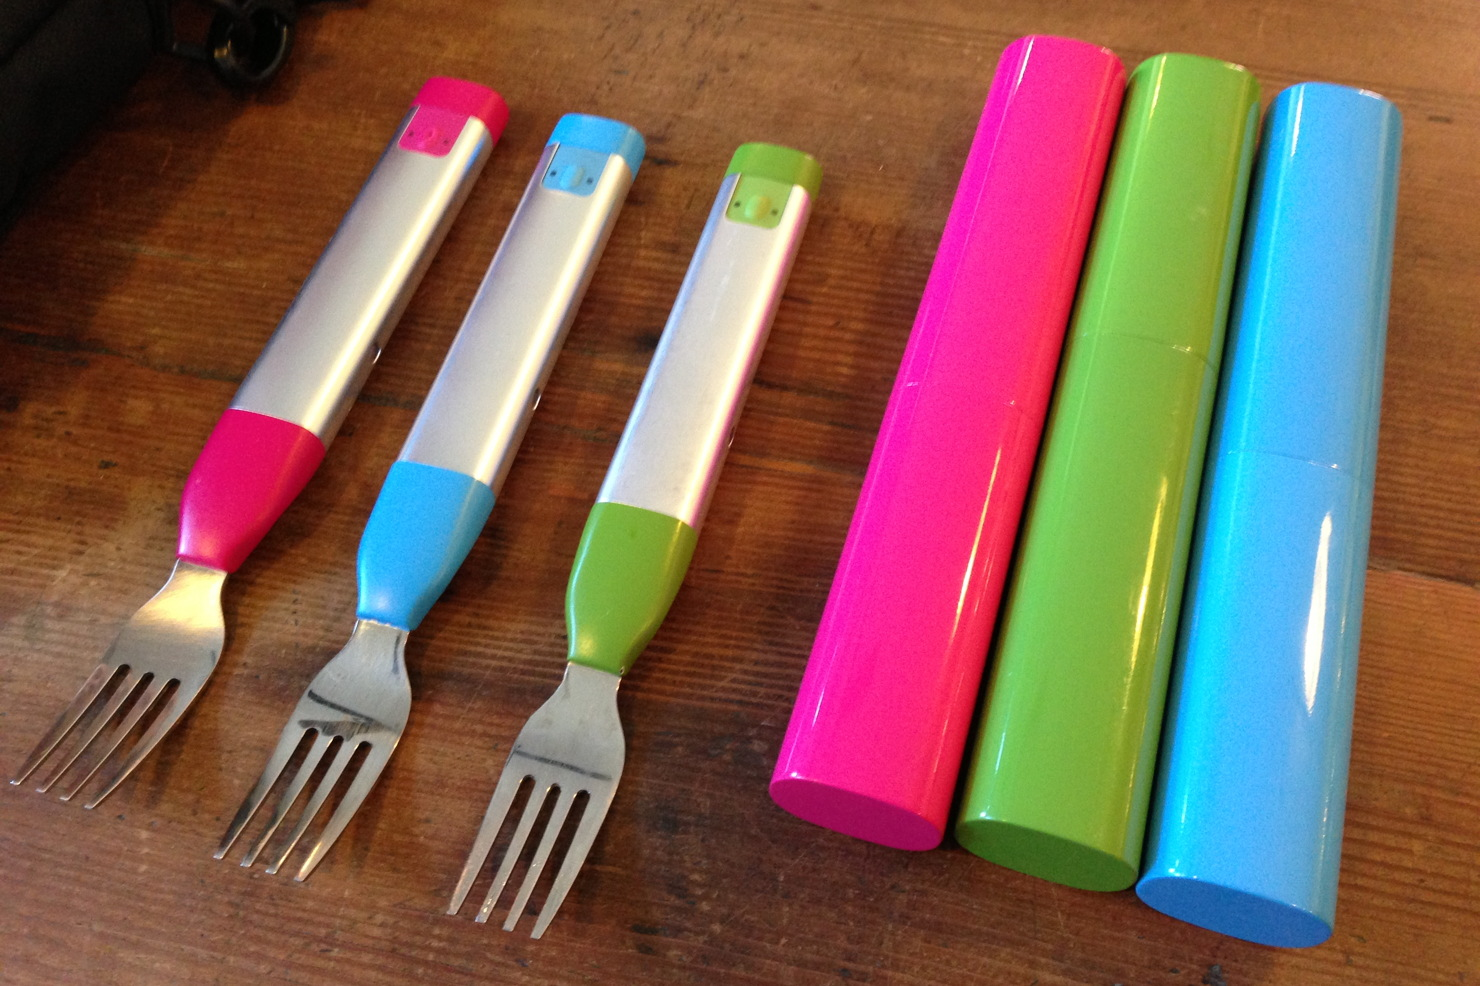 The HAPIfork Bluetooth fork comes in pink, blue, and green.